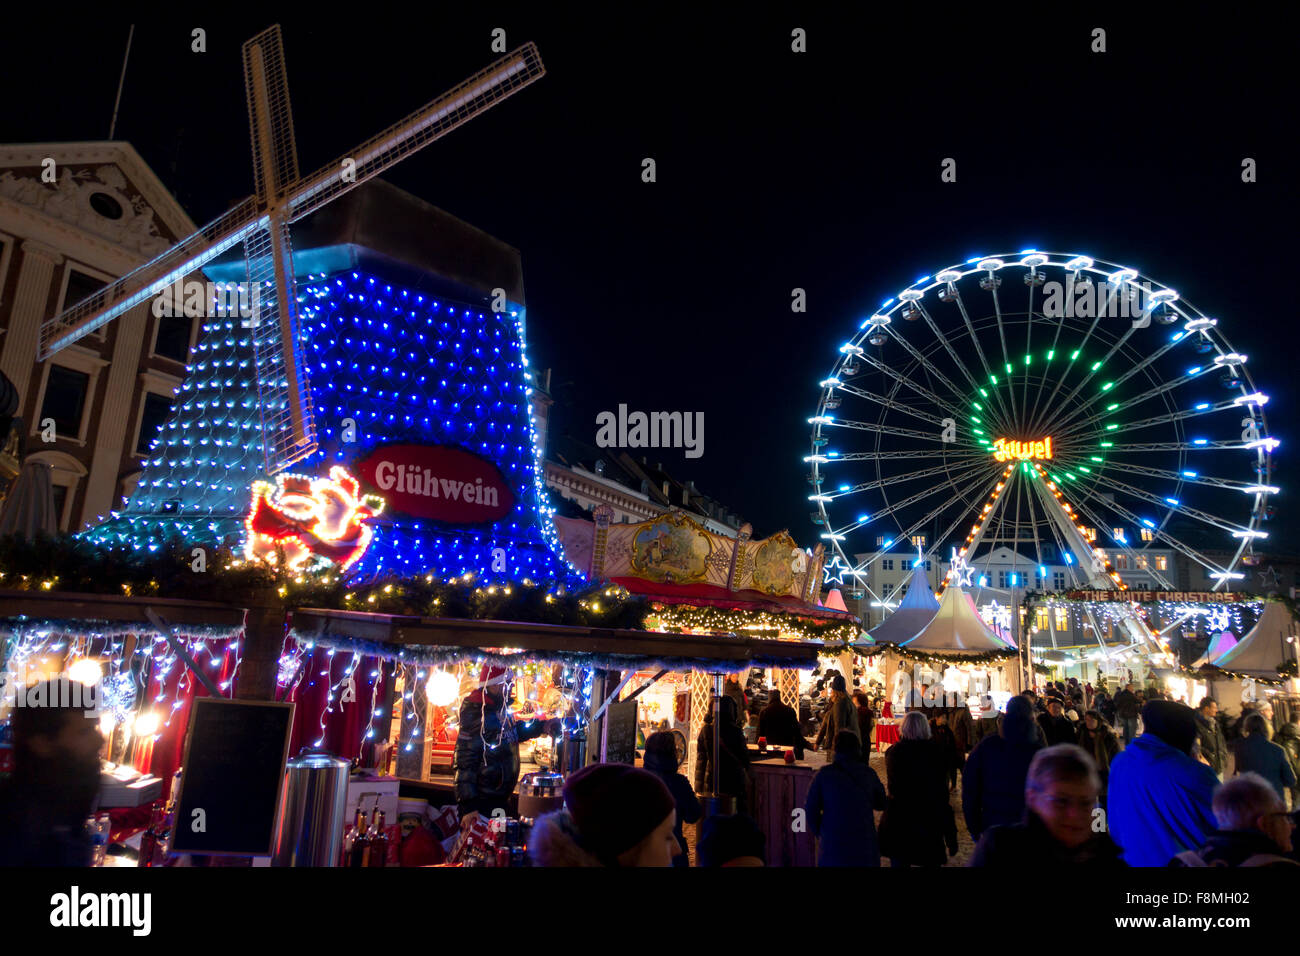 Illuminated, colourful windmill and ferris wheel at the new Christmas market on Nytorv at Strøget in Copenhagen, - Stock Image